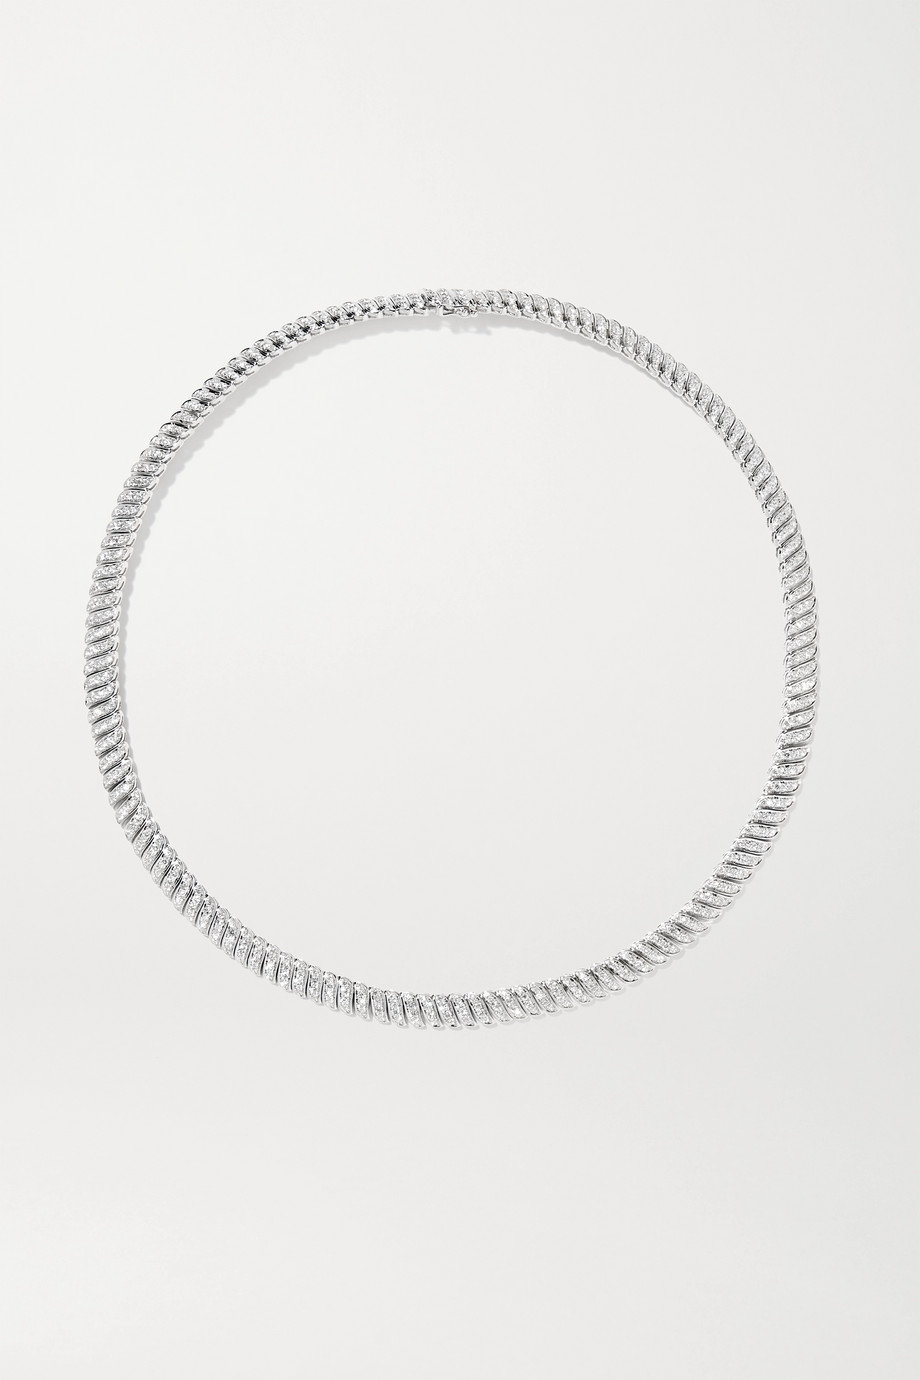 Anita Ko Zoe 18-karat white gold diamond necklace